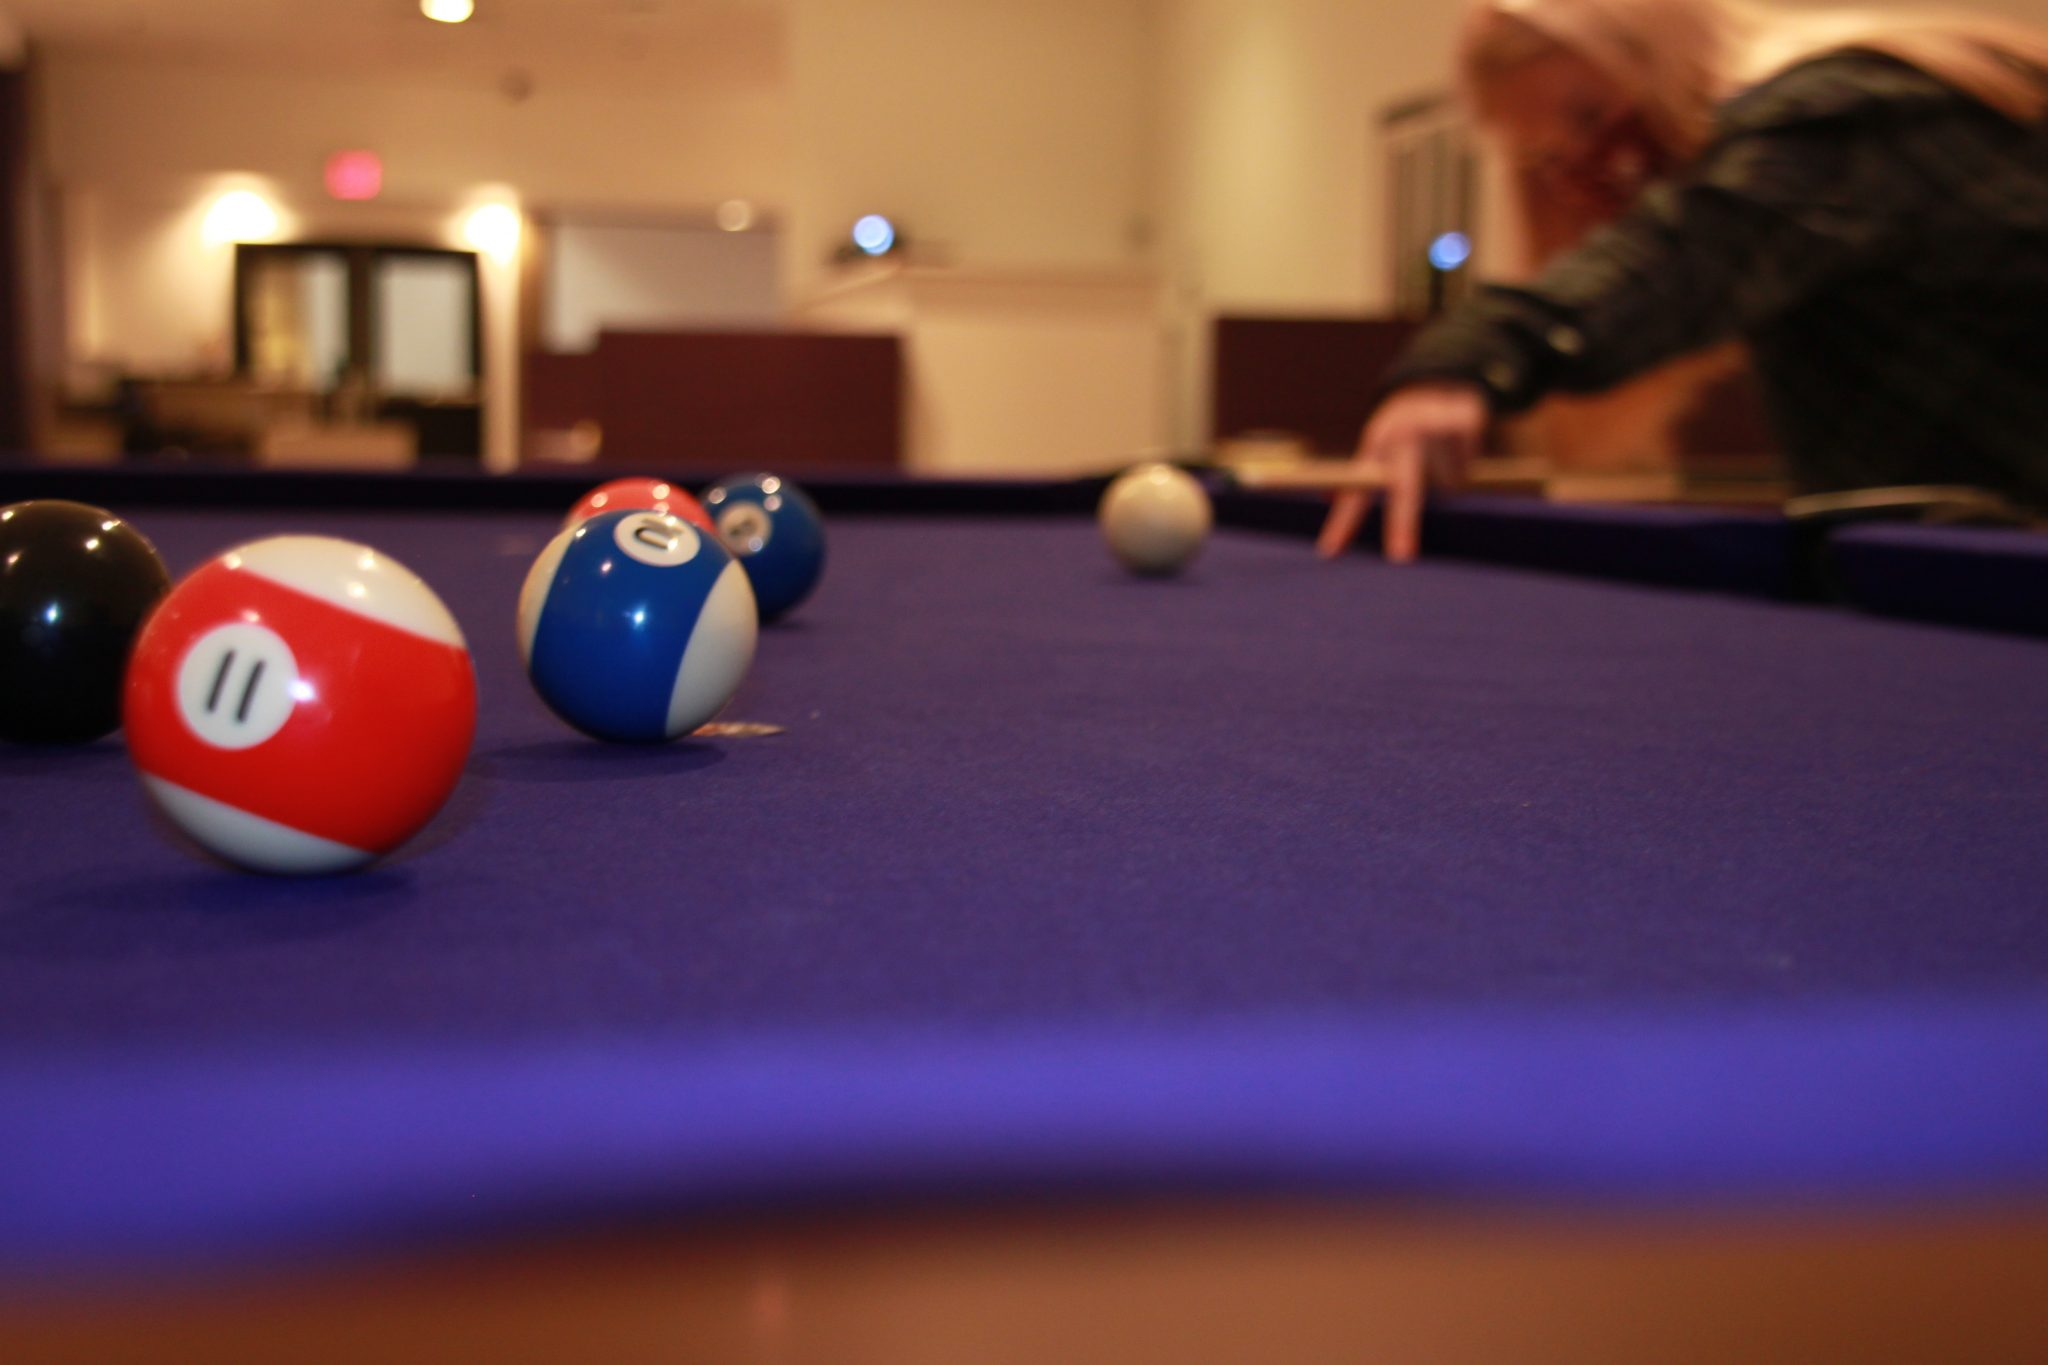 A person setting up their shot in a game of pool.